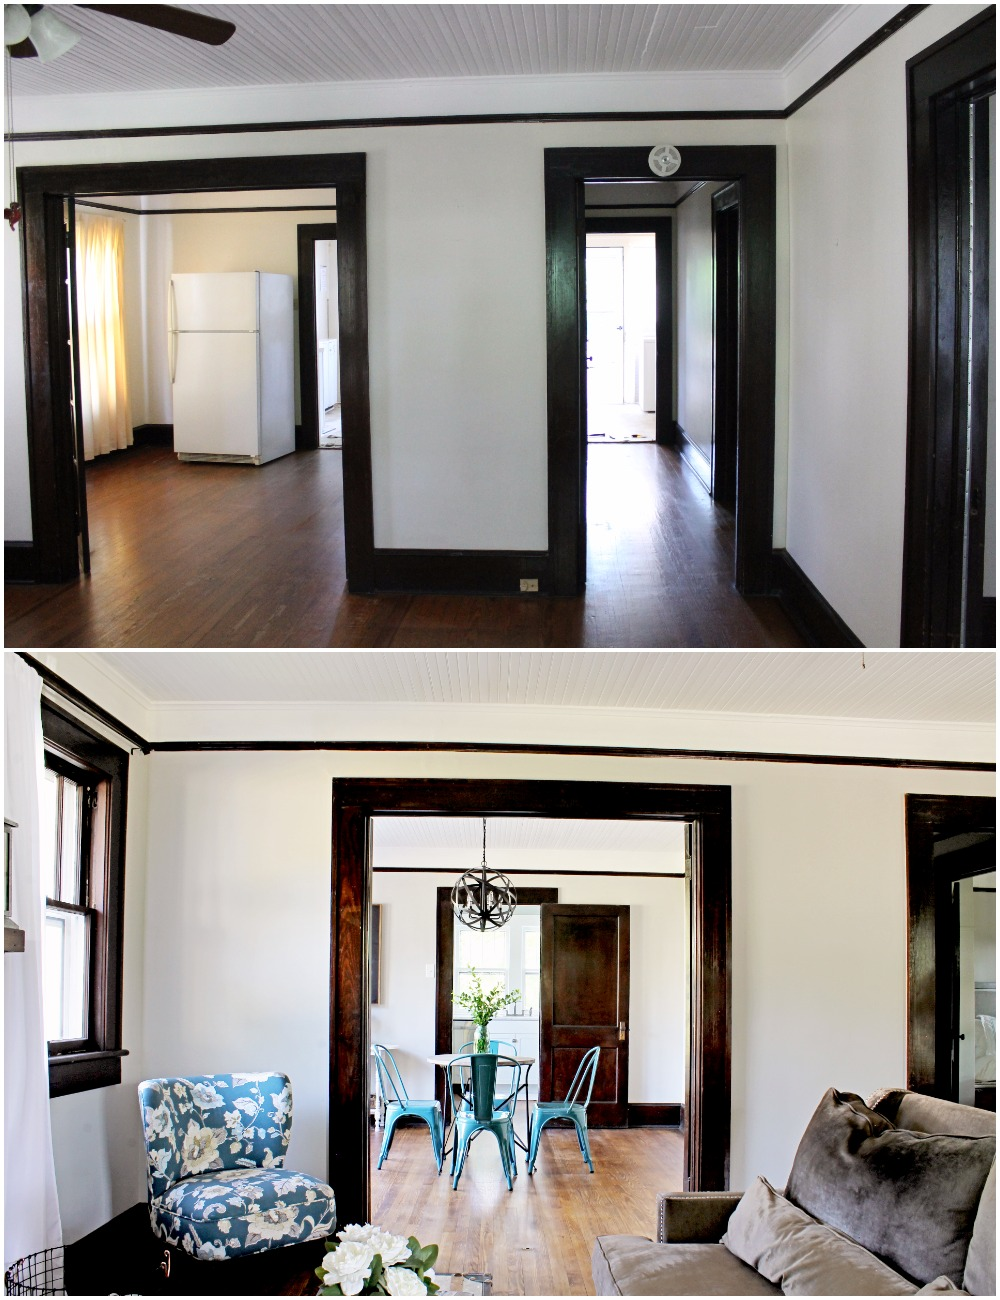 House Flipping Before and Afters - Living Room Budget Renovation Remodel, Wood Trim Paint Colors - Sherwin Williams Repose Gray (5).jpg